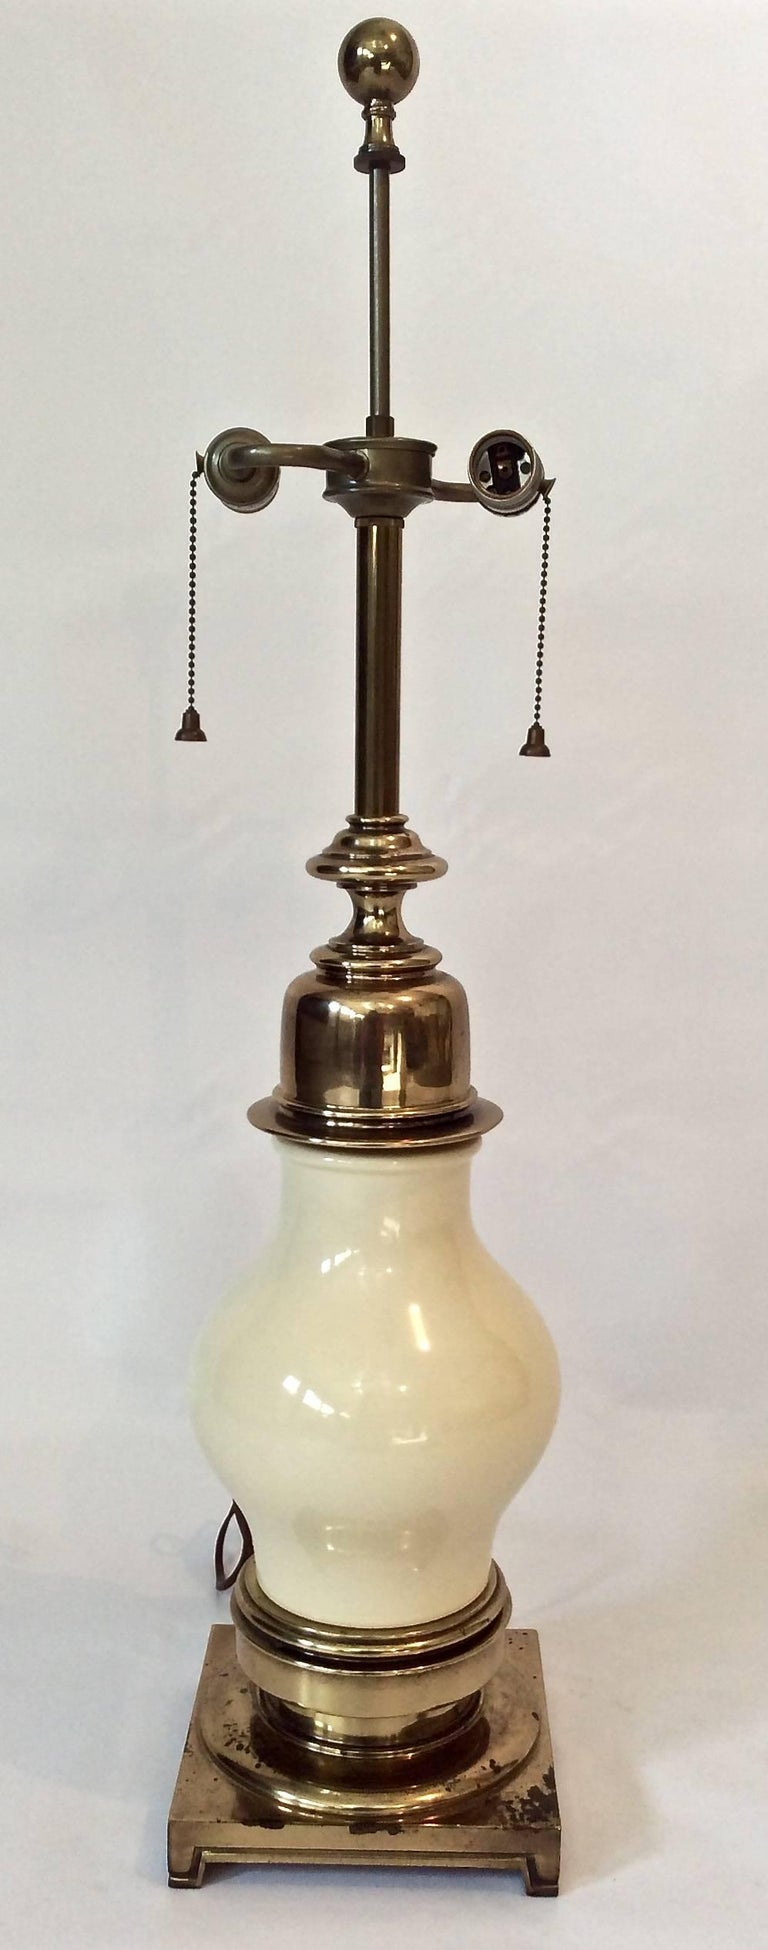 Impressive Pair of Midcentury Ceramic and Brass Table Lamps, by Stiffel For Sale 1